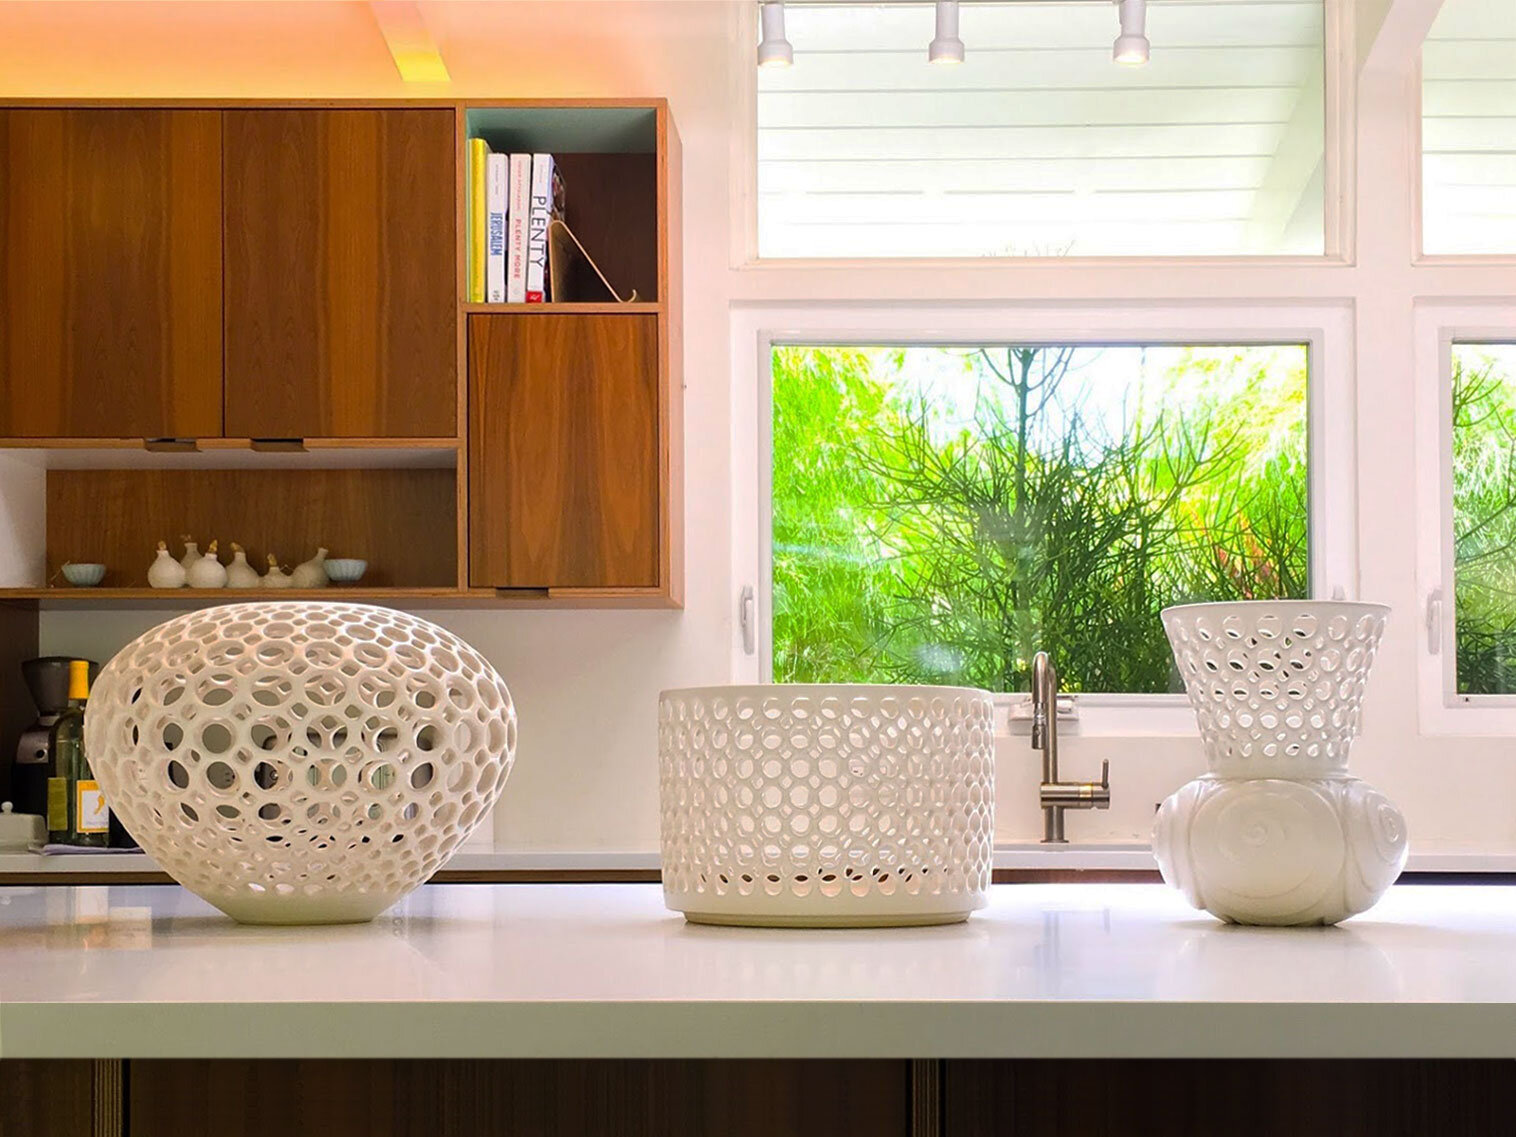 Pierced lace orb vessel, lace cylindrical bowl, spiral shell pierced and carved vessel in kitchen of Eichler private residence, Palo Alto, CA